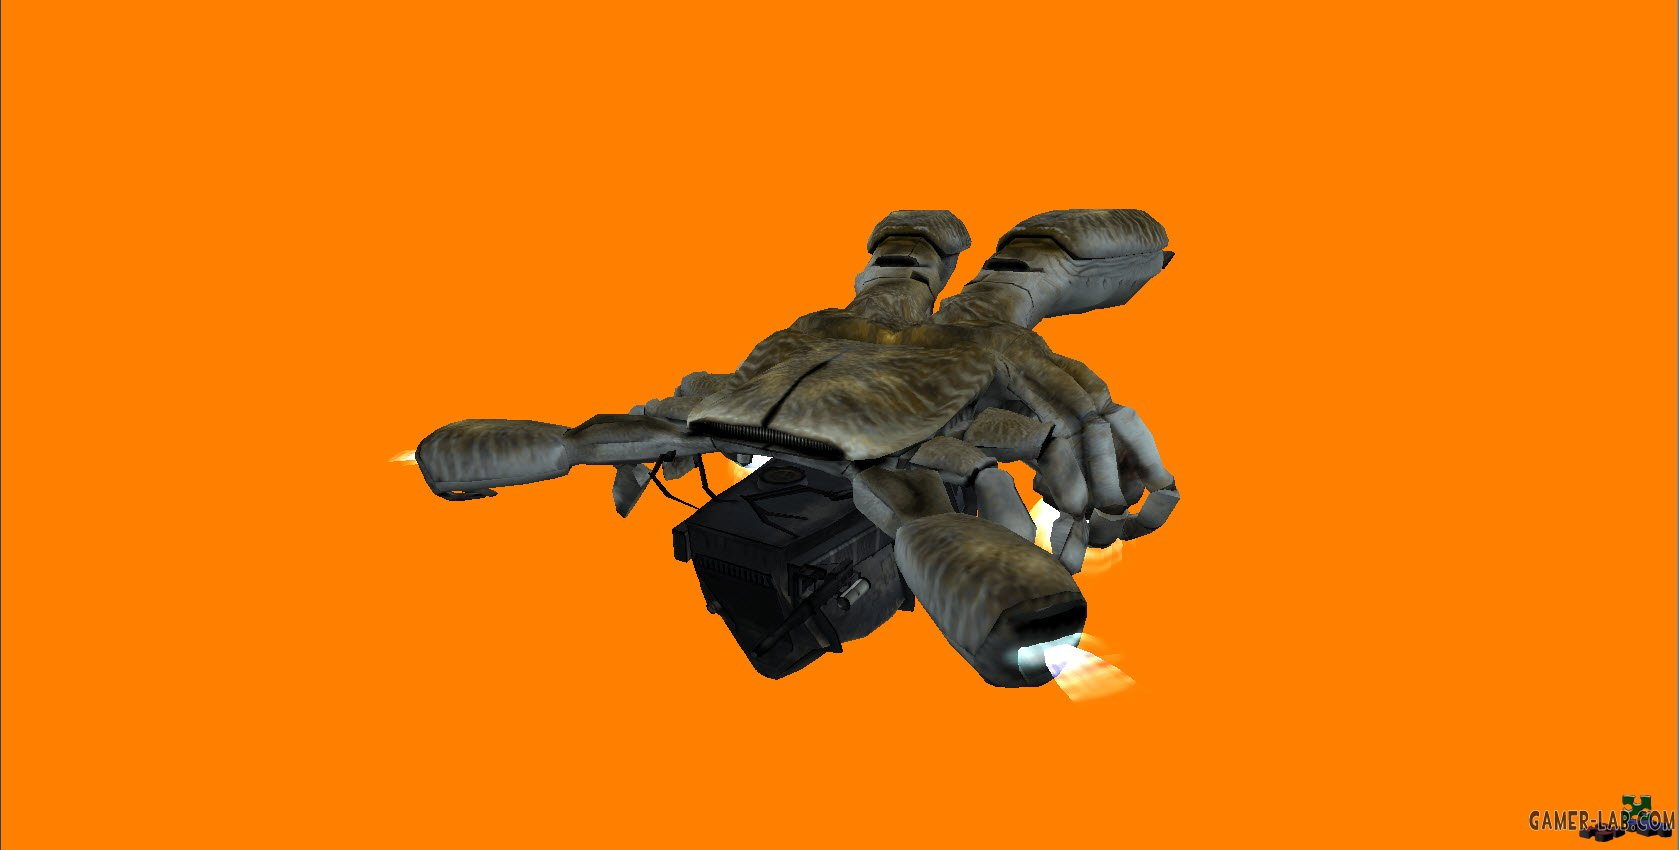 HL2 dropship for HL1 Osprey